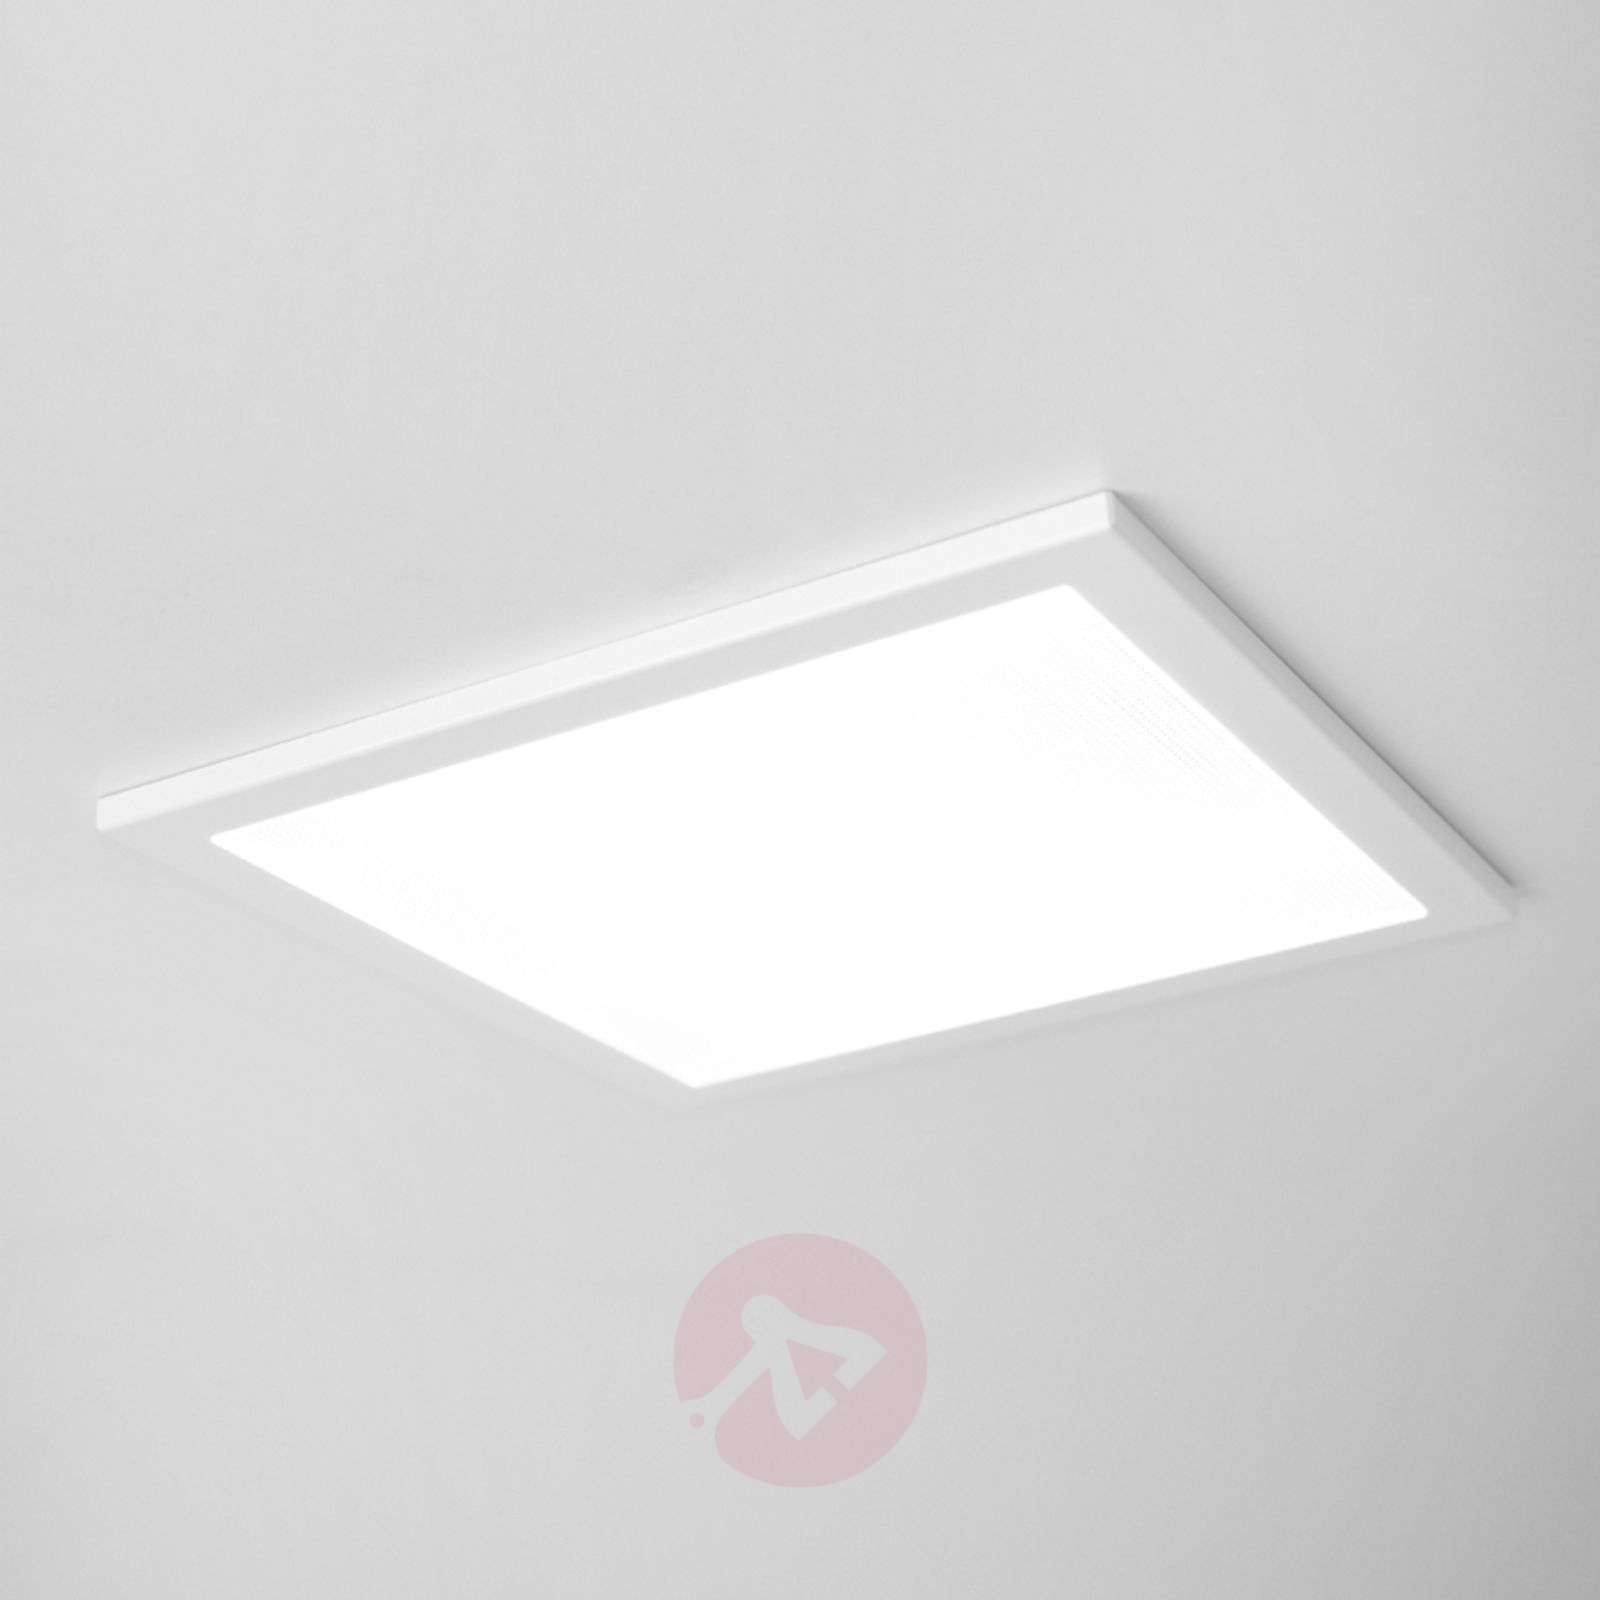 SUN 9 ultra slim LED recessed ceiling light-1018227X-01